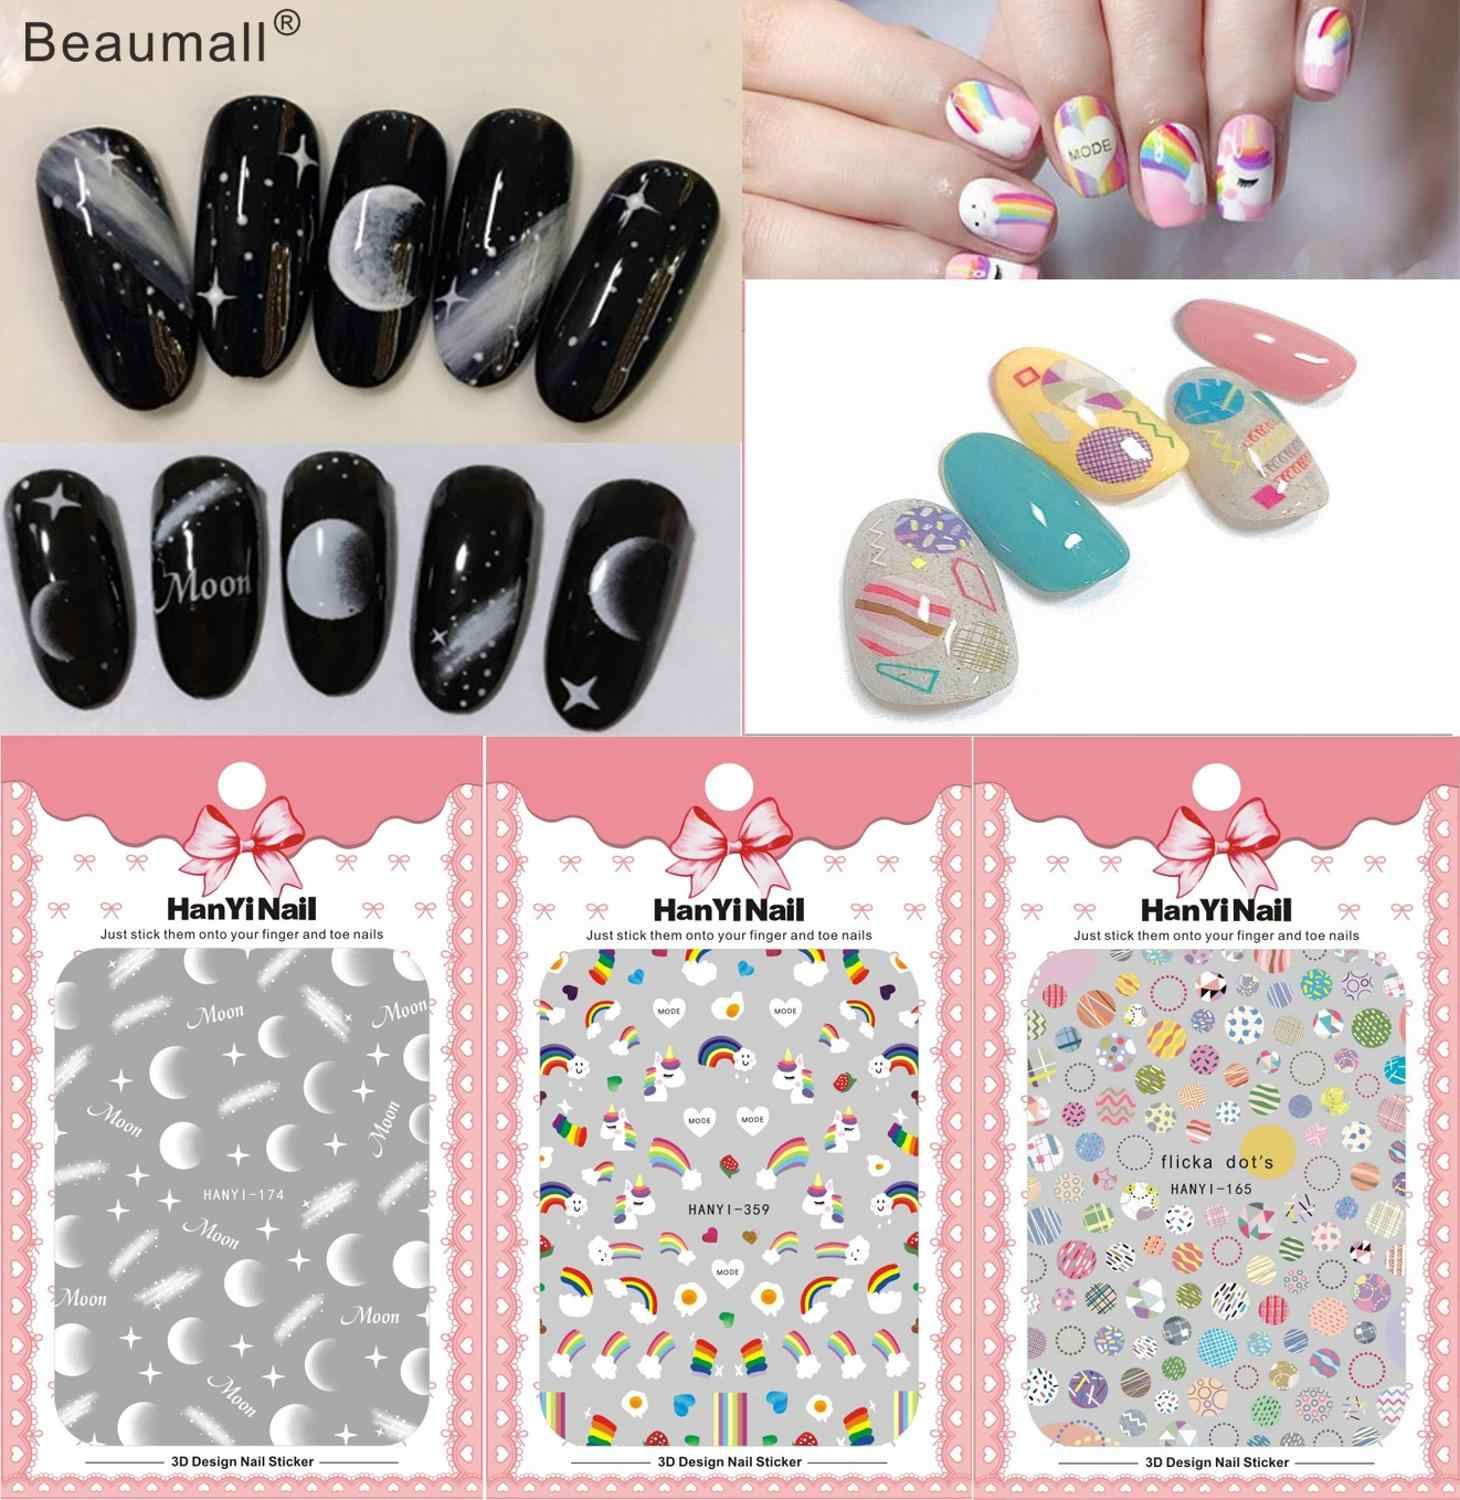 Fashion Nails Art Manicure Terug Lijm Decal Decoraties Ontwerp Nail Sticker Voor Nagels Tips Beauty